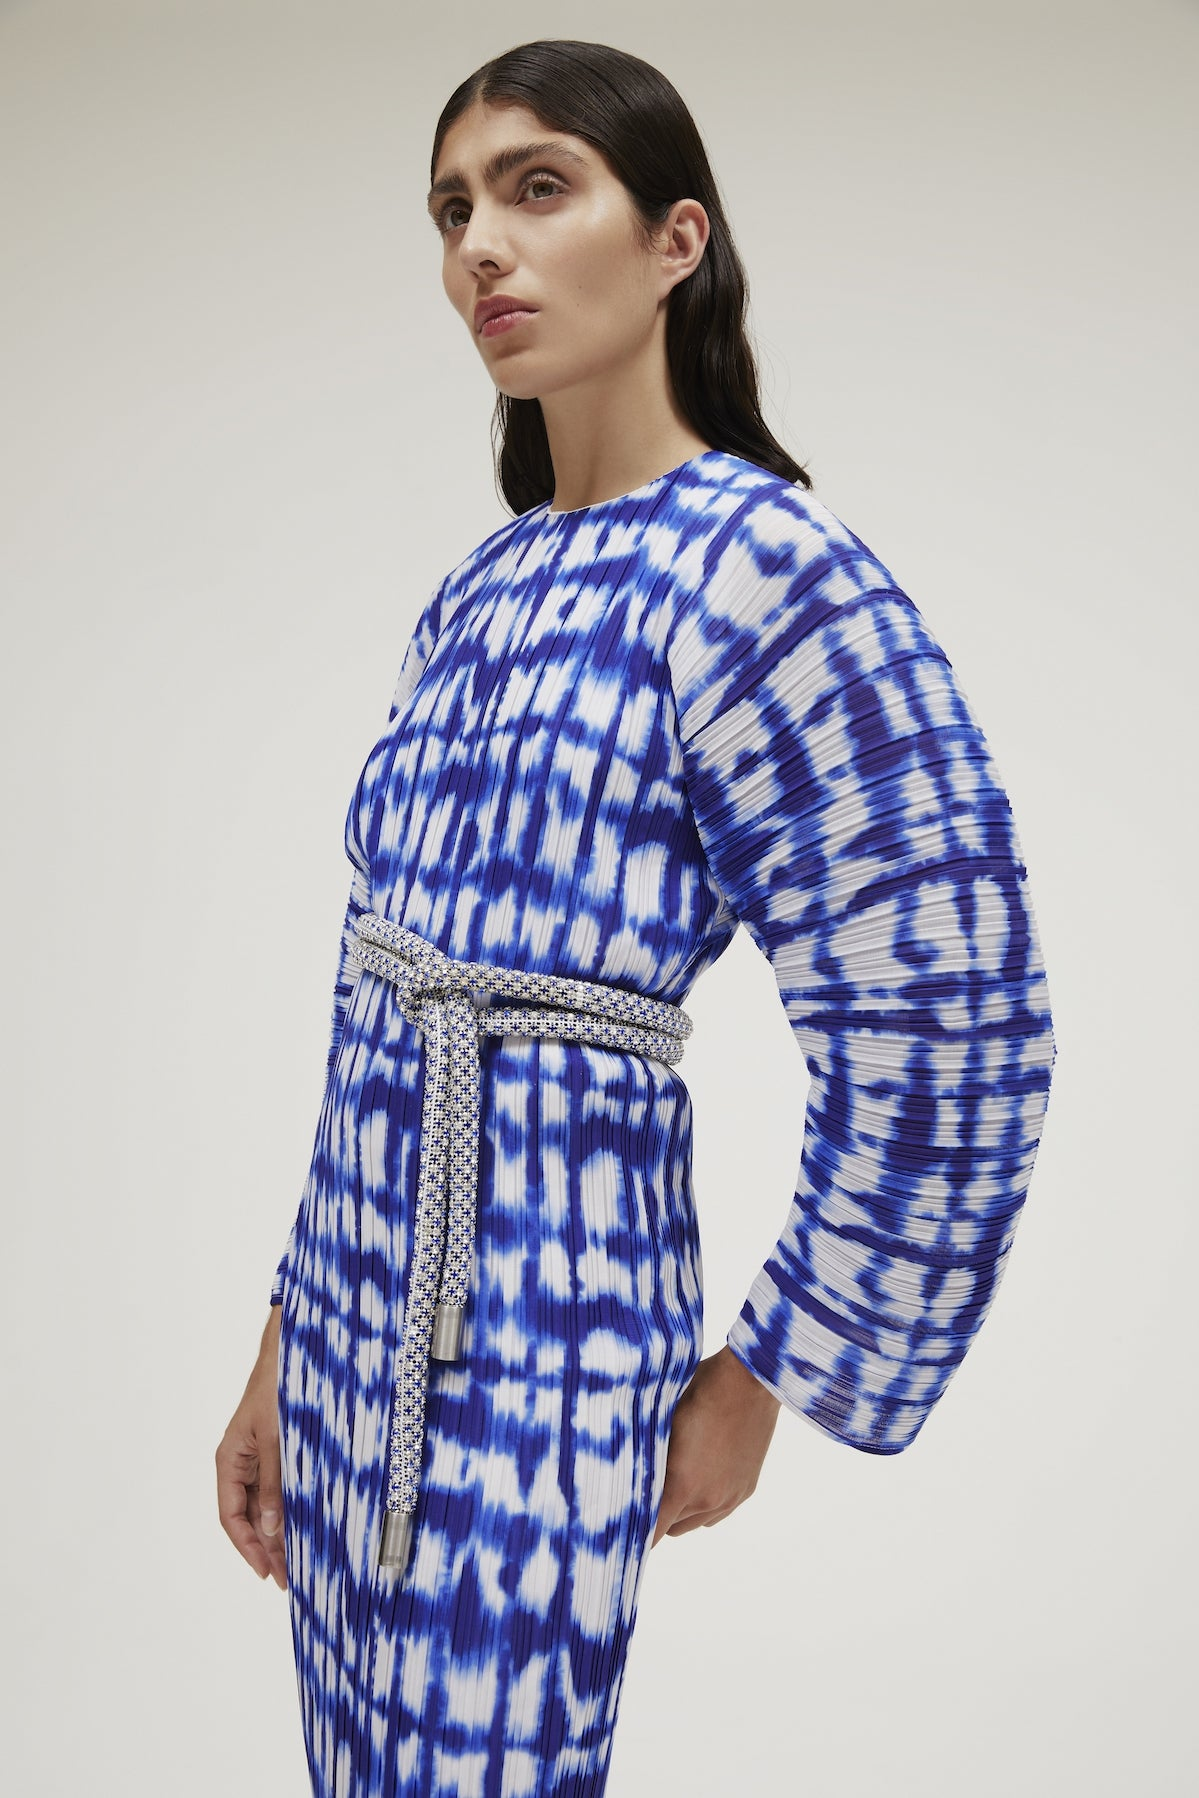 The Mirabelle Dress in Cobalt Blue Painted Check